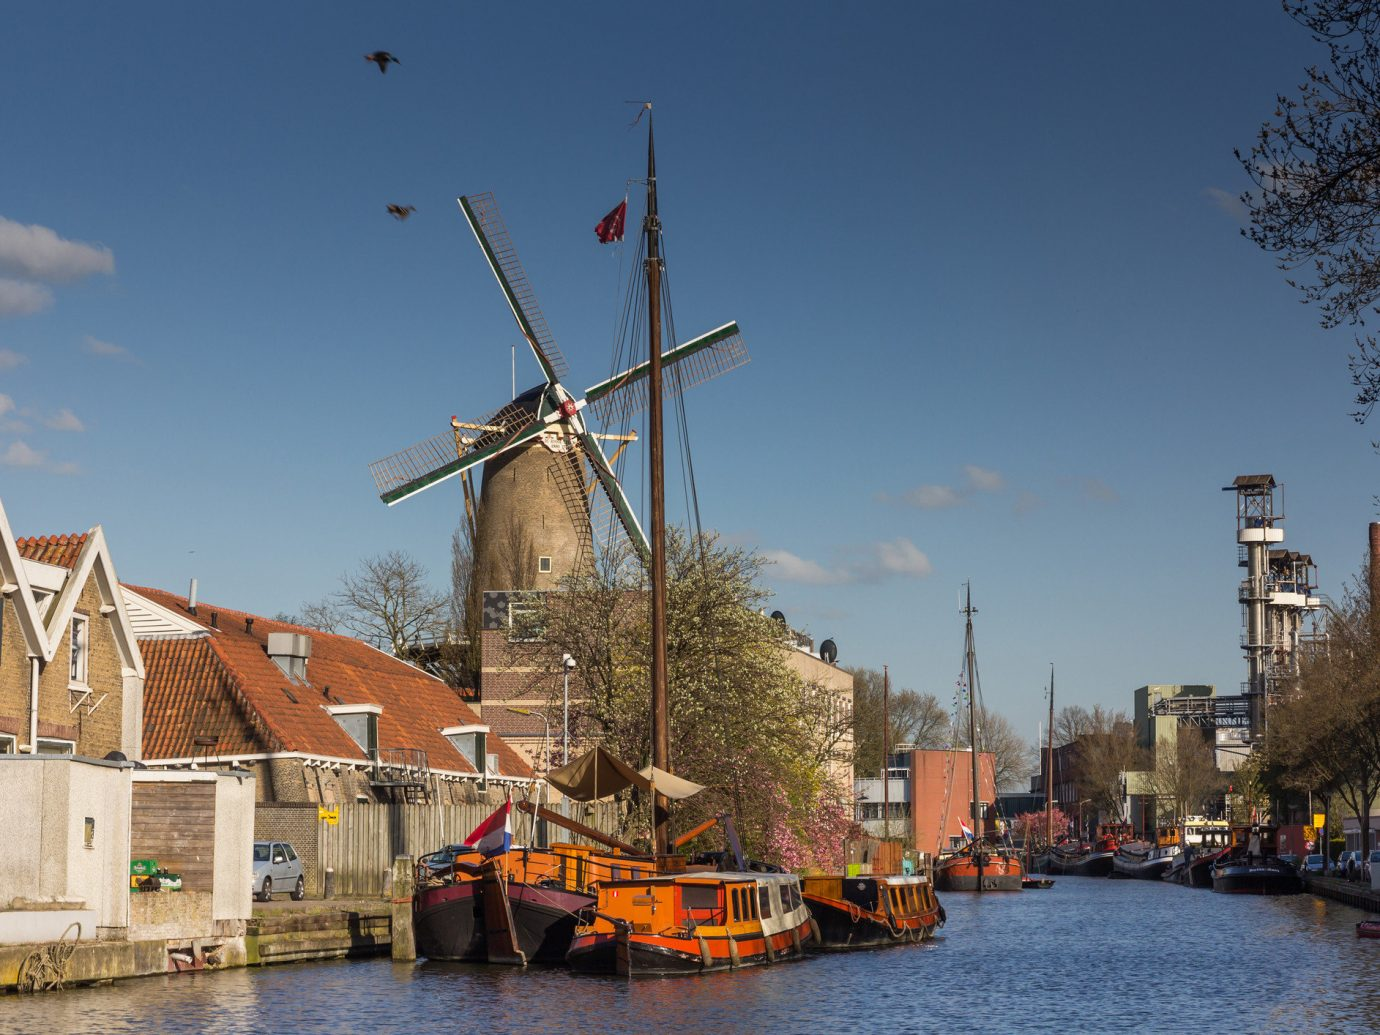 Trip Ideas outdoor sky water waterway Boat Canal tree building City River windmill plant evening channel